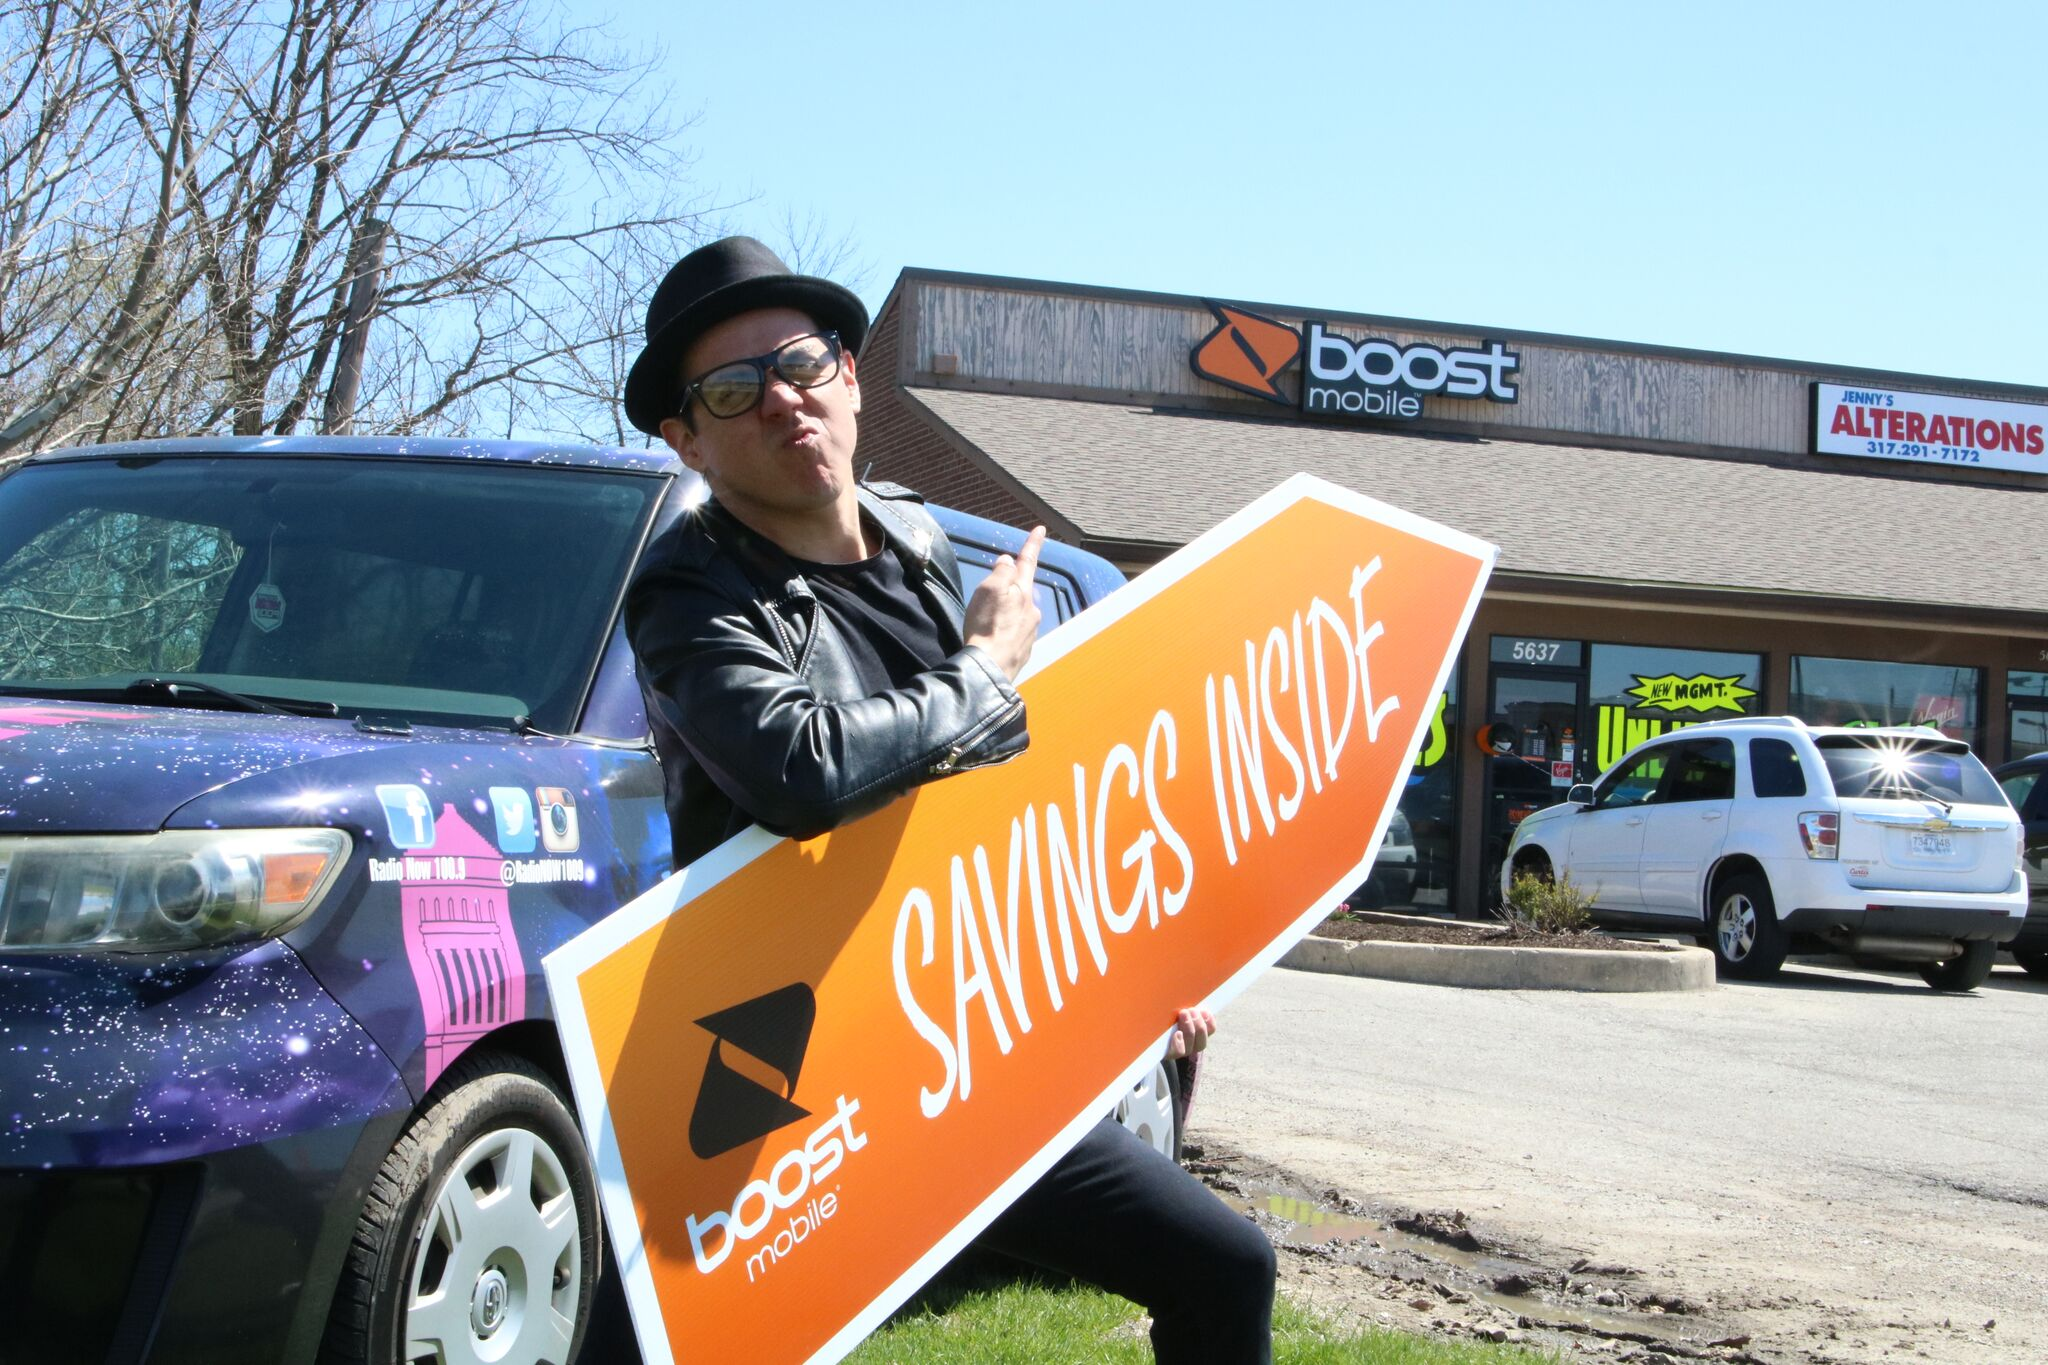 Boost Mobile - Radio Now 100.9